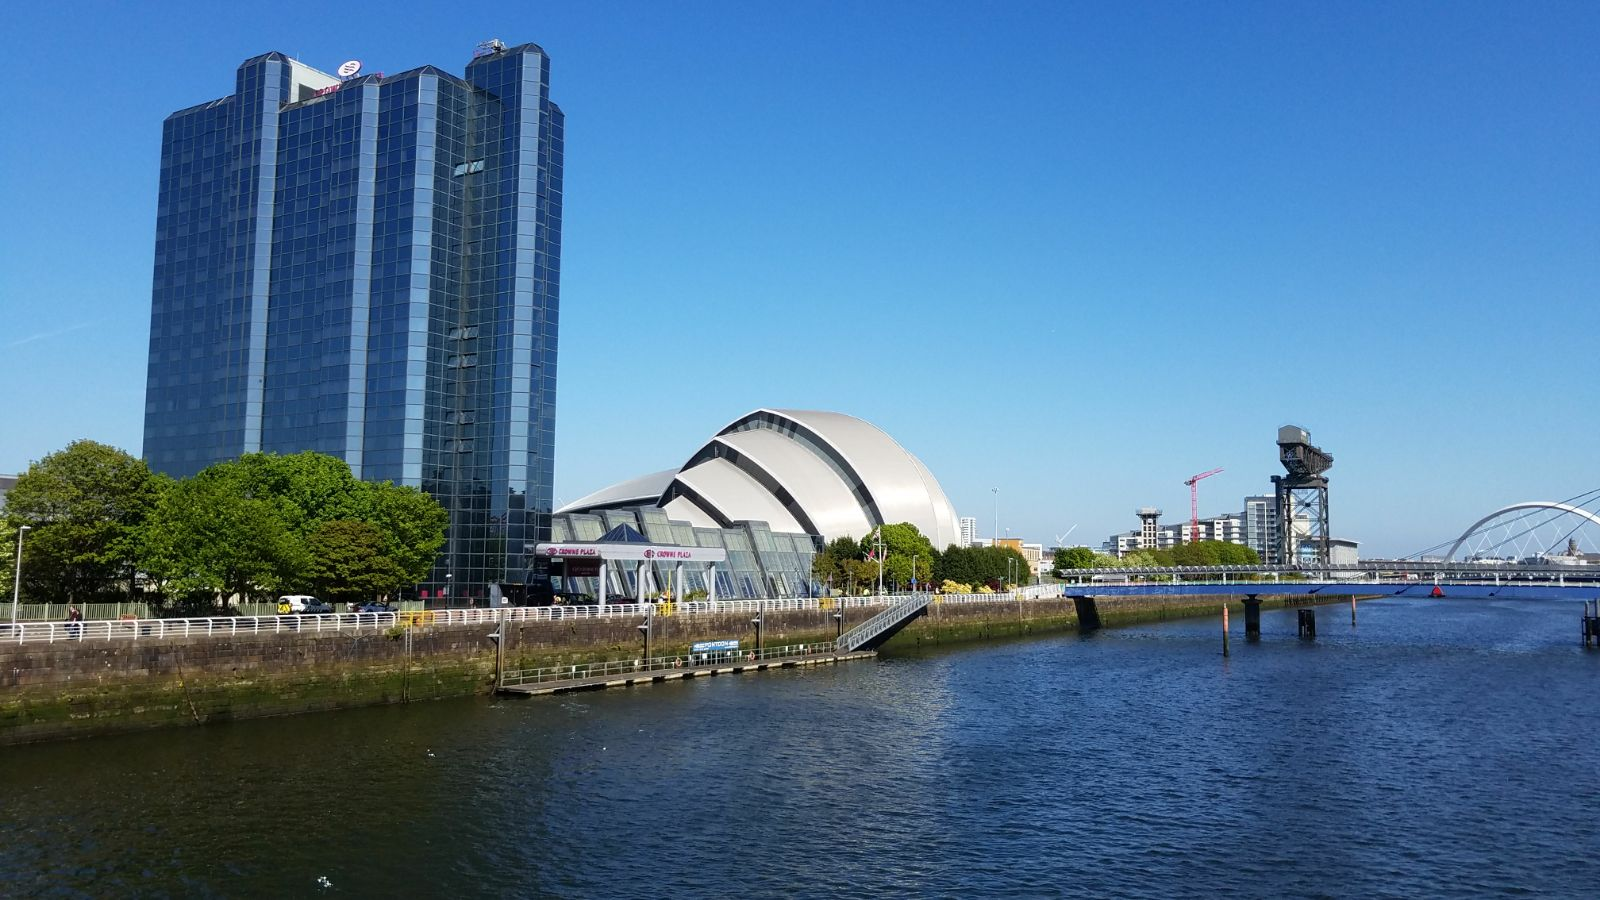 Walkabout along the River Clyde